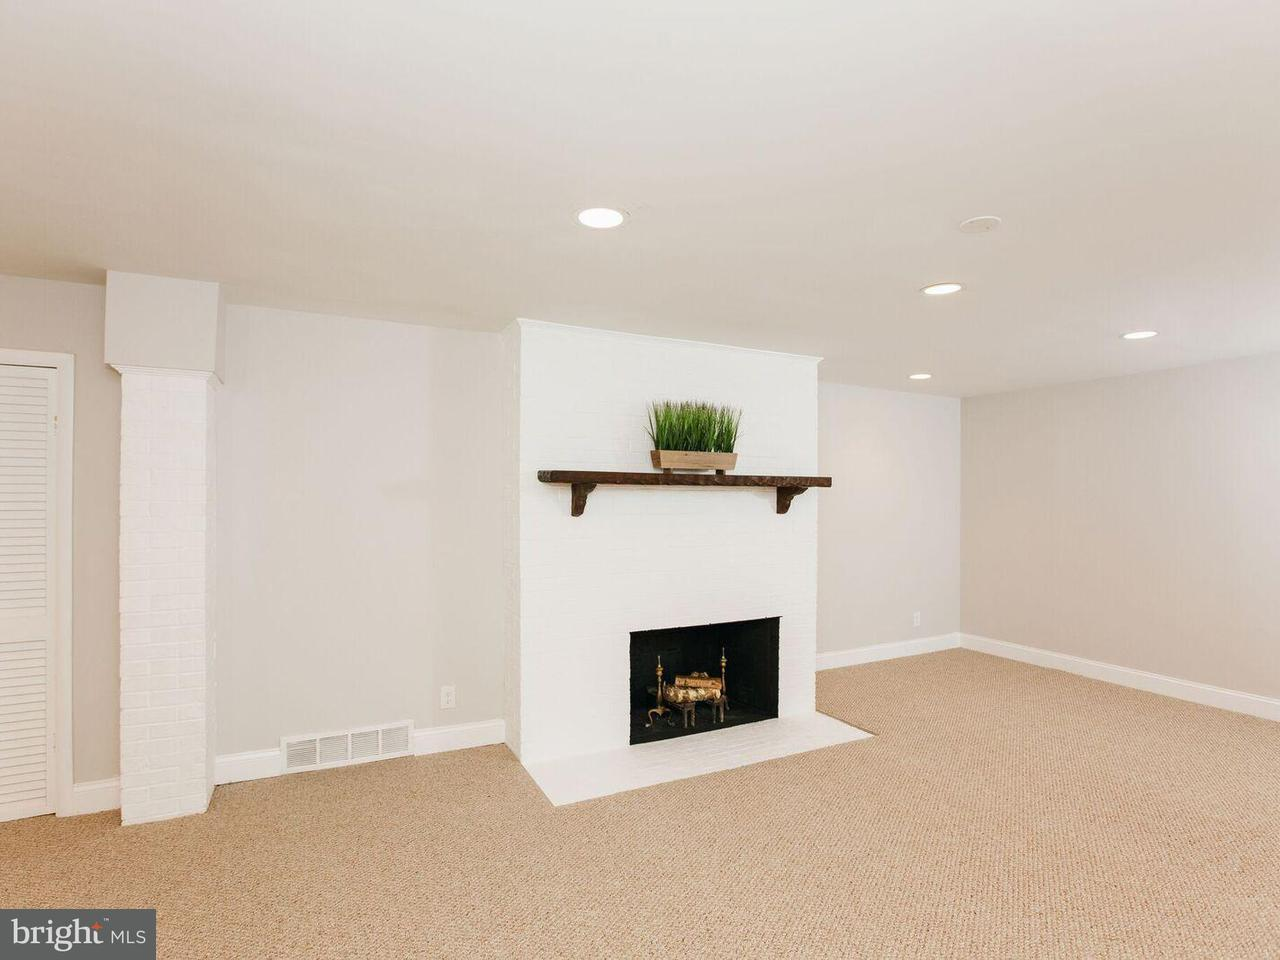 Additional photo for property listing at 4301 Marionet Street 4301 Marionet Street Alexandria, Virginia 22312 Verenigde Staten